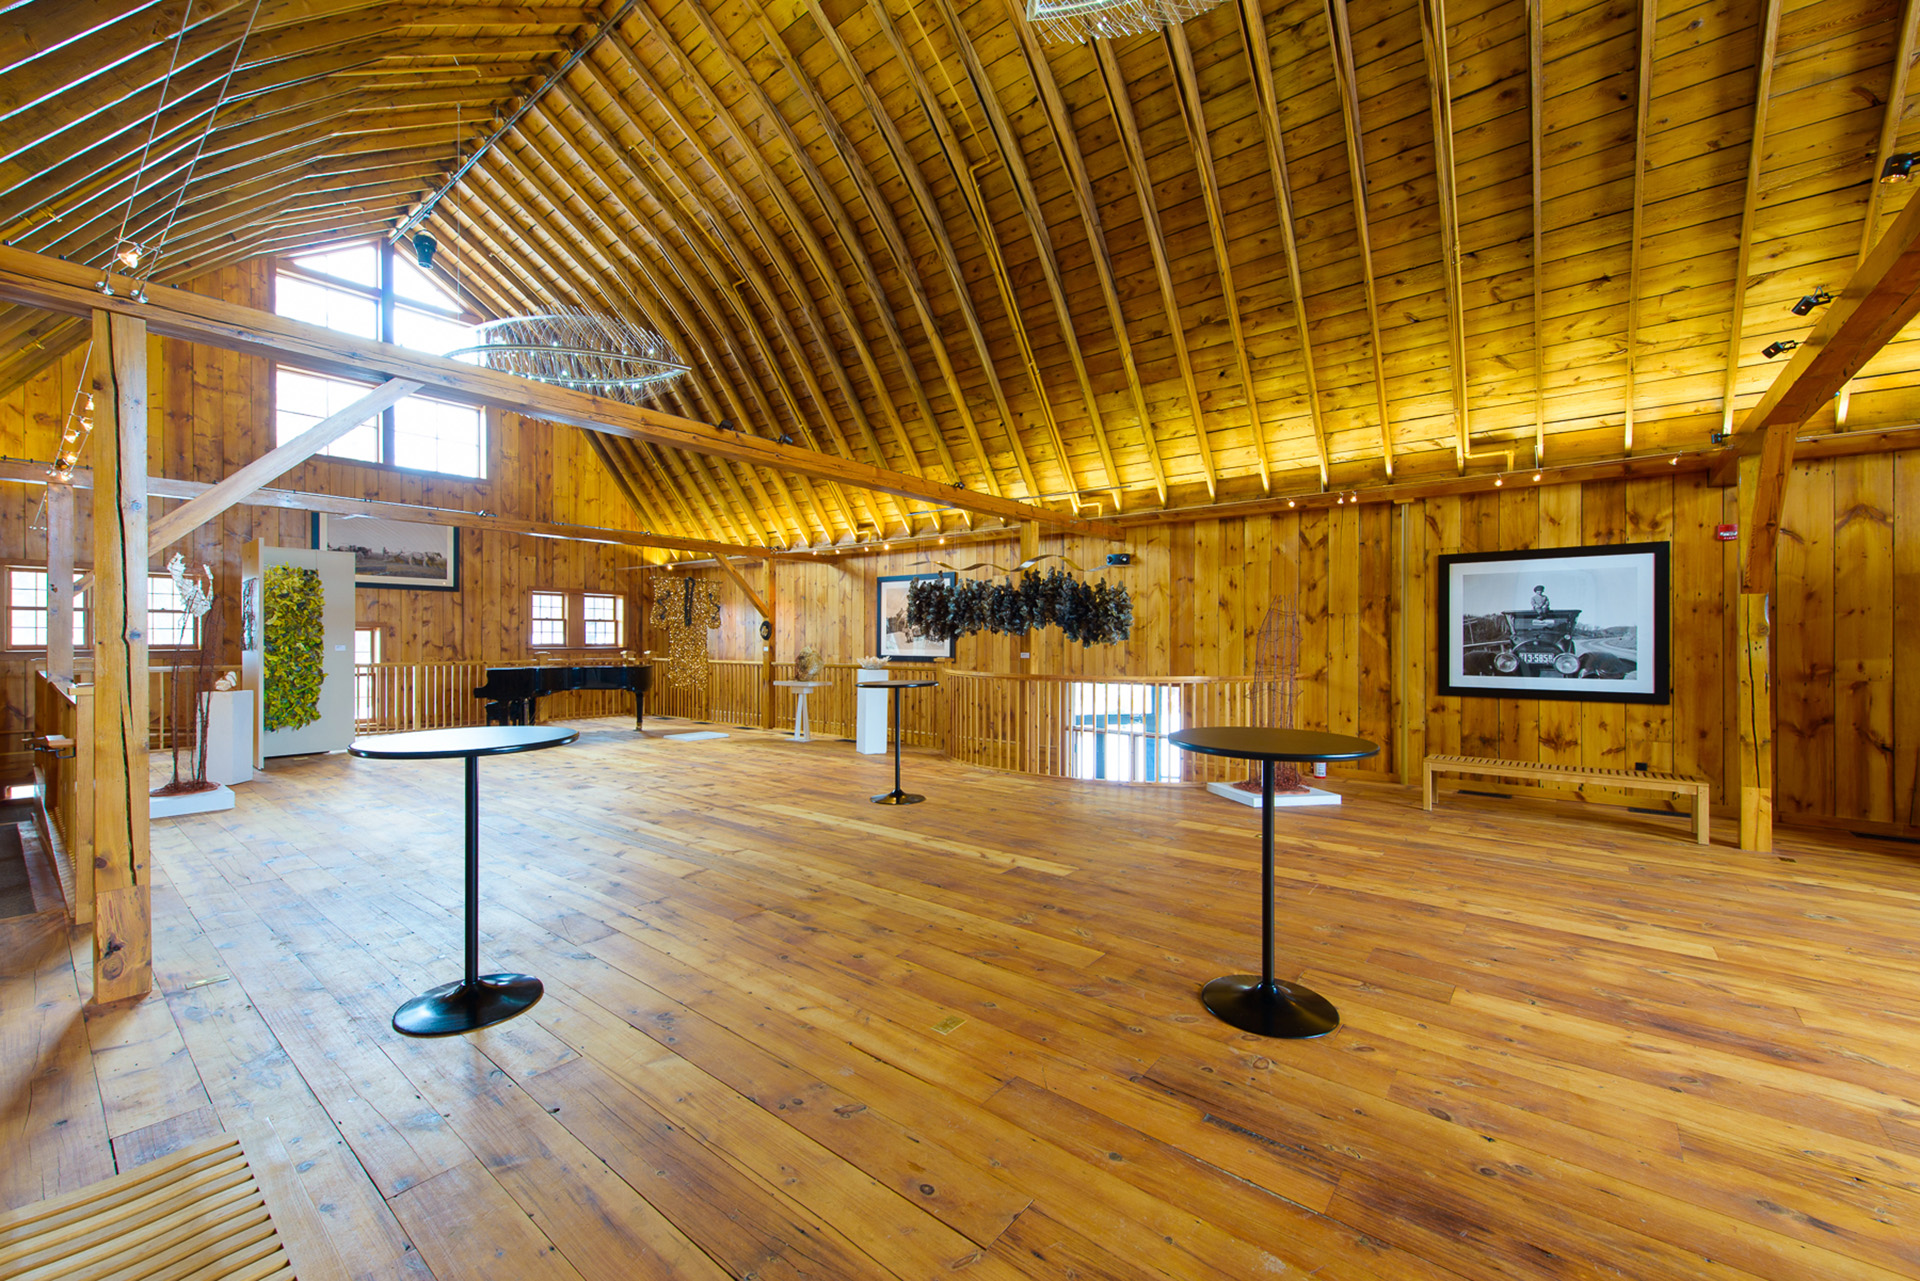 Restored barn available for rent with bar top tables, grand piano and restored, historic photos of A.P. Anderson Family